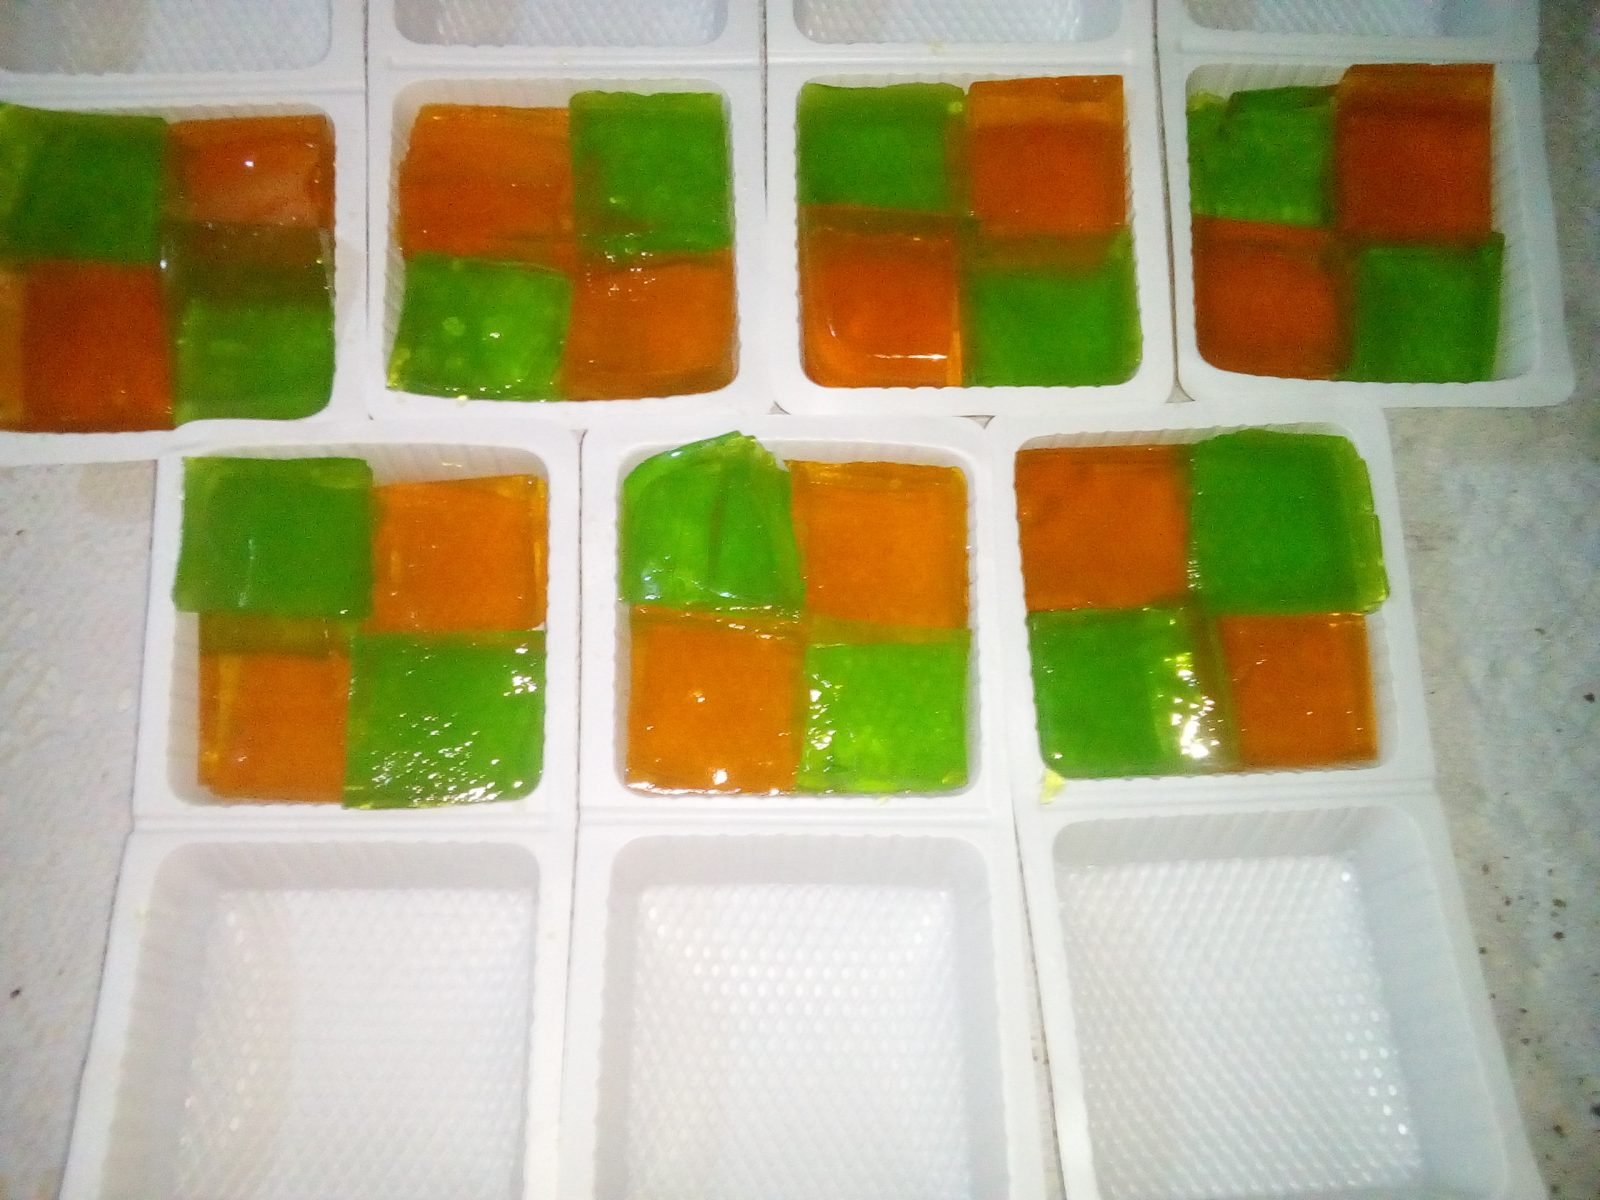 Jello pudding from Sompurna Rannaghor